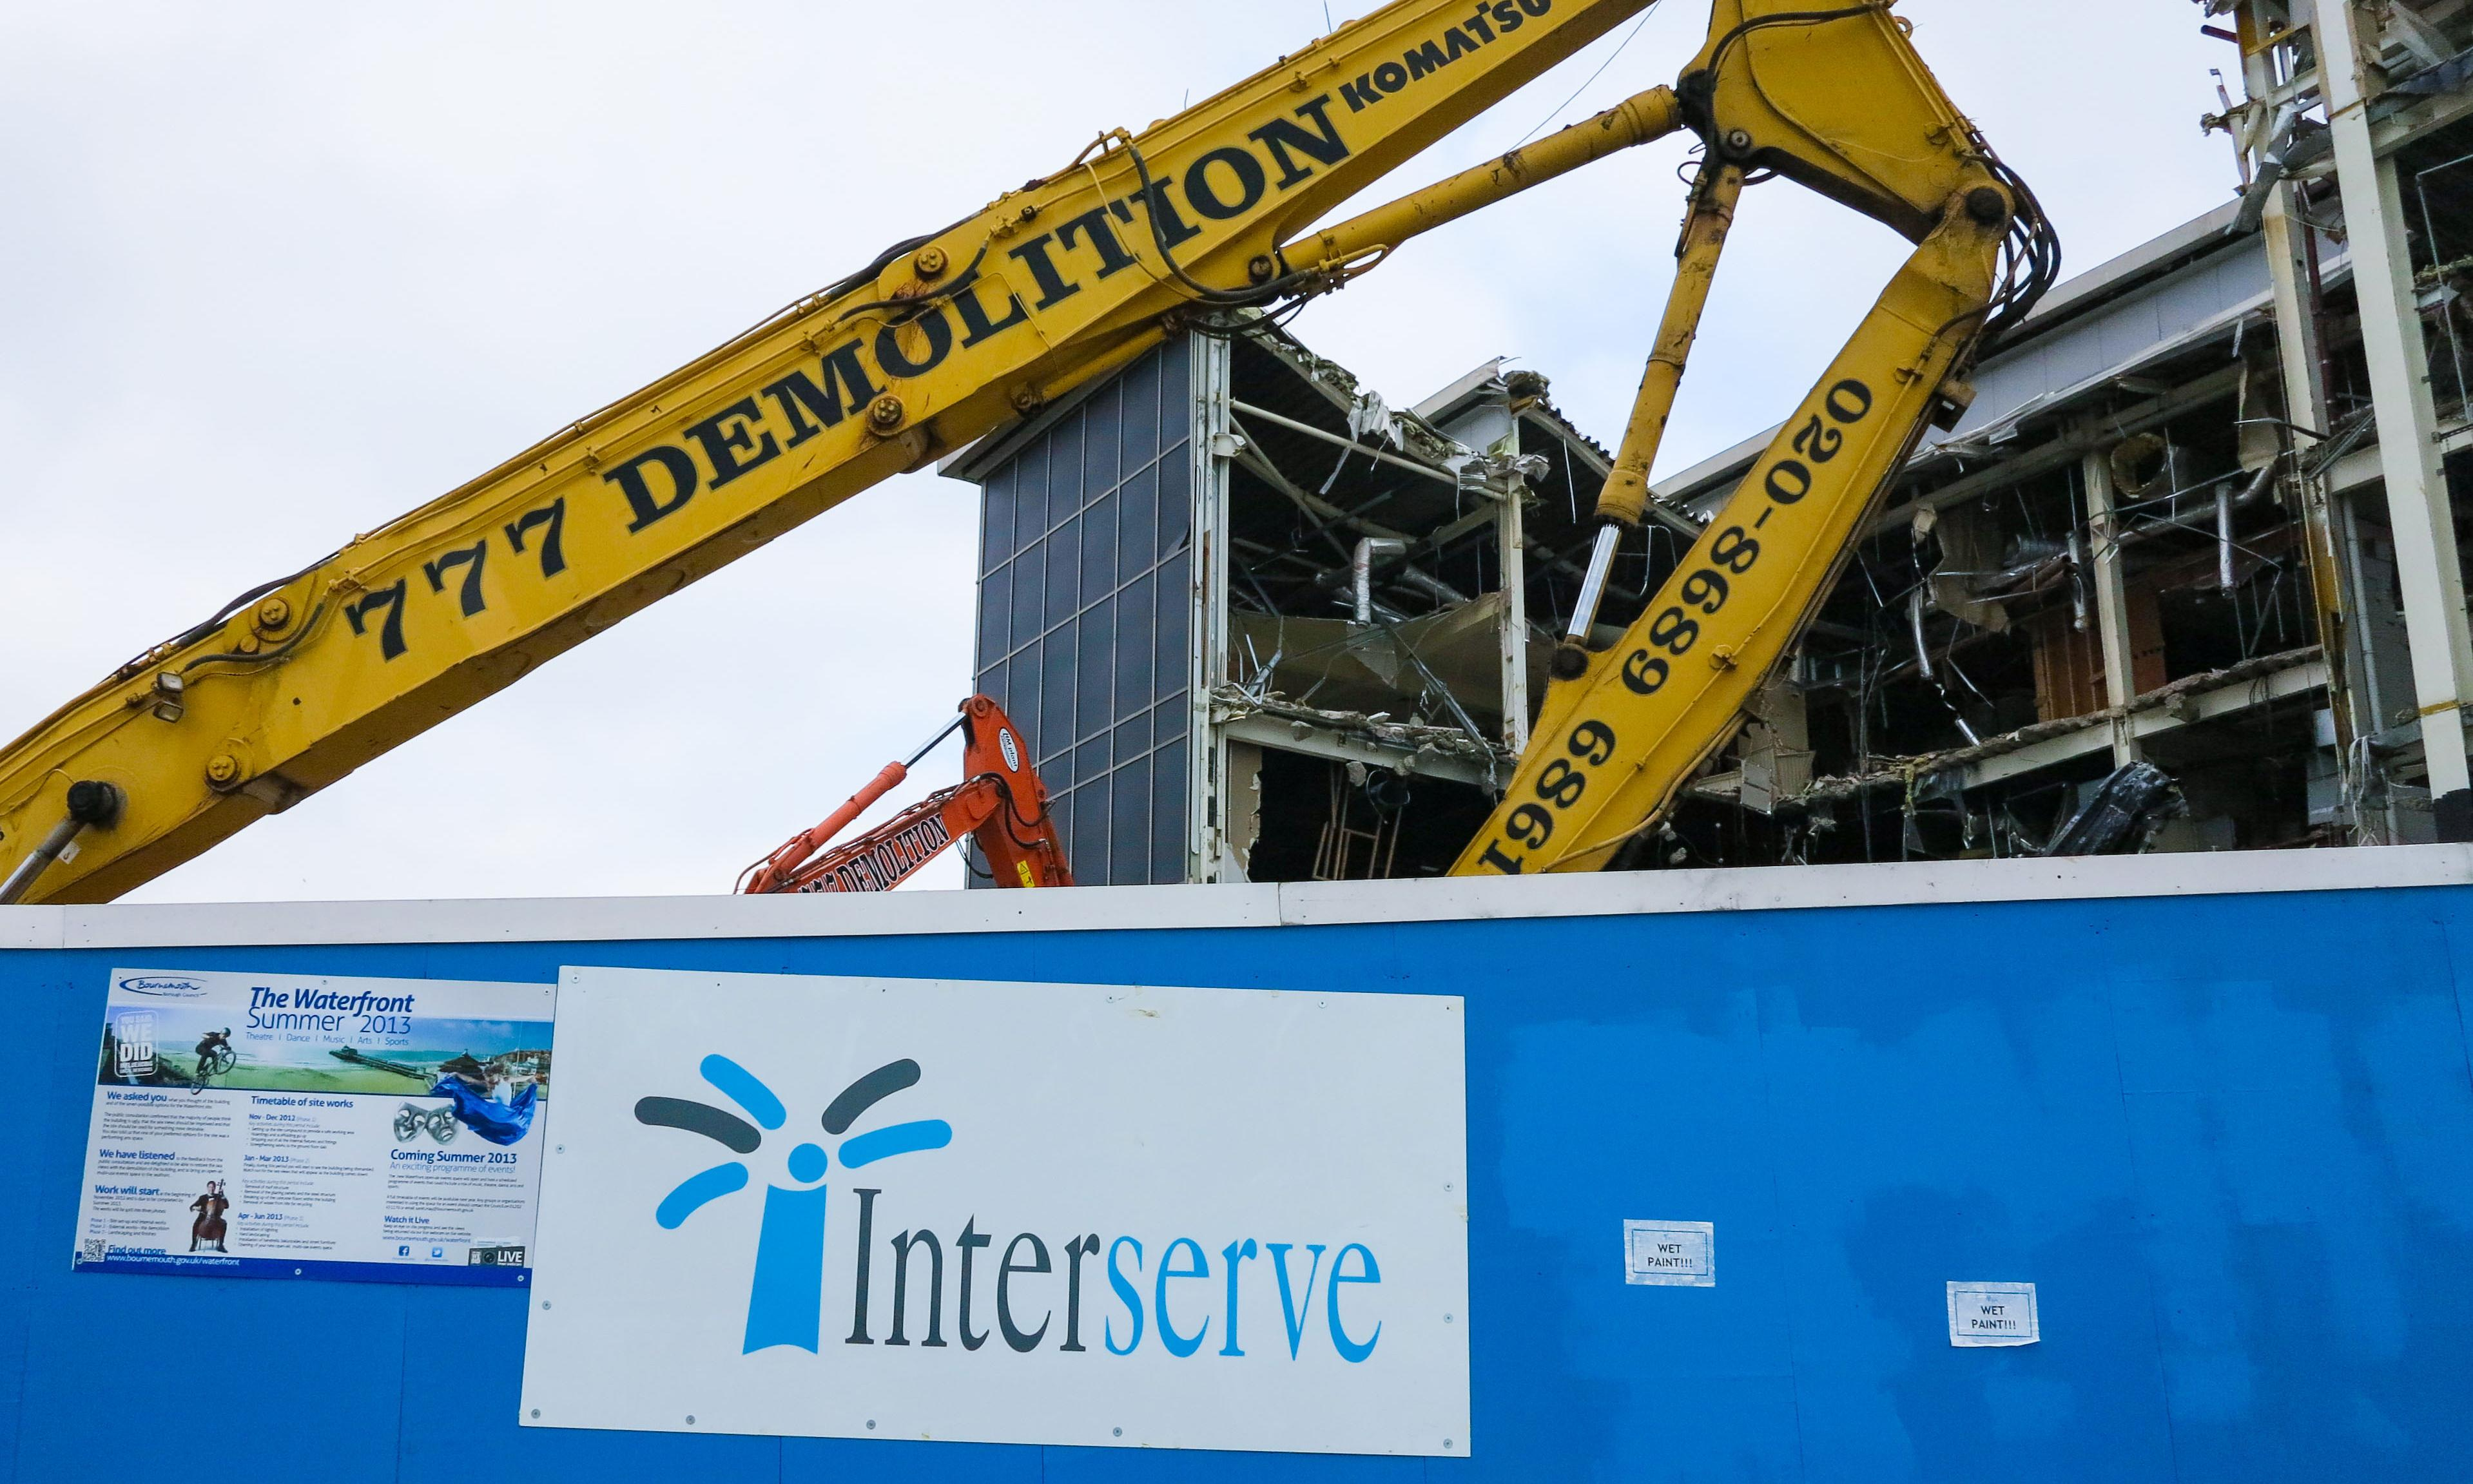 Interserve fights to keep contracts as rivals circle